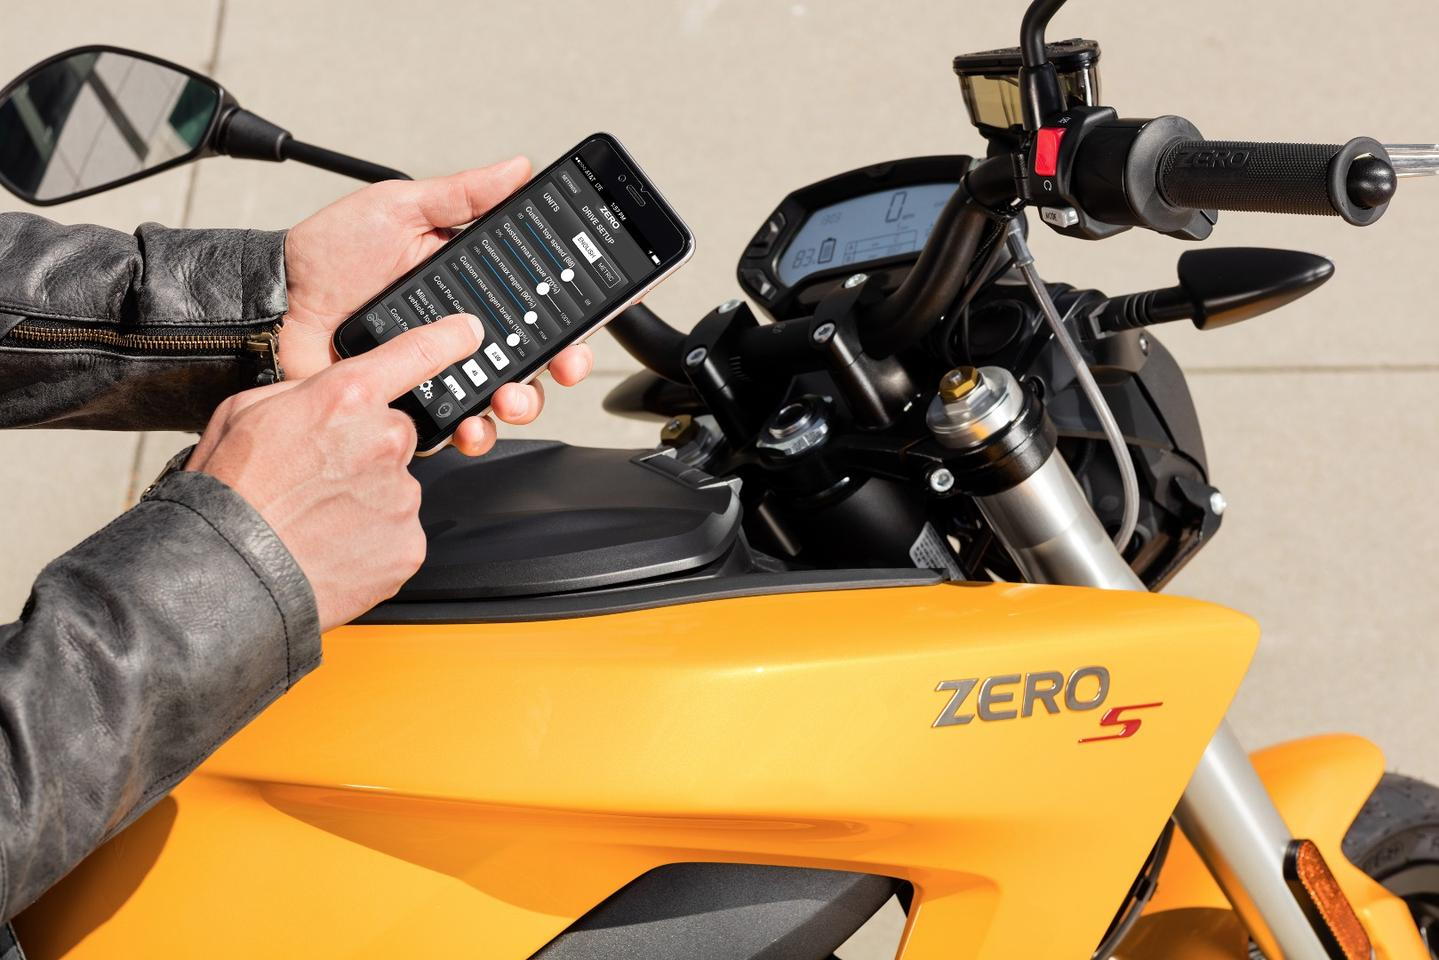 2017 Zero S: new smartphone app now allows you to update your bike's firmware without a trip to the service centre